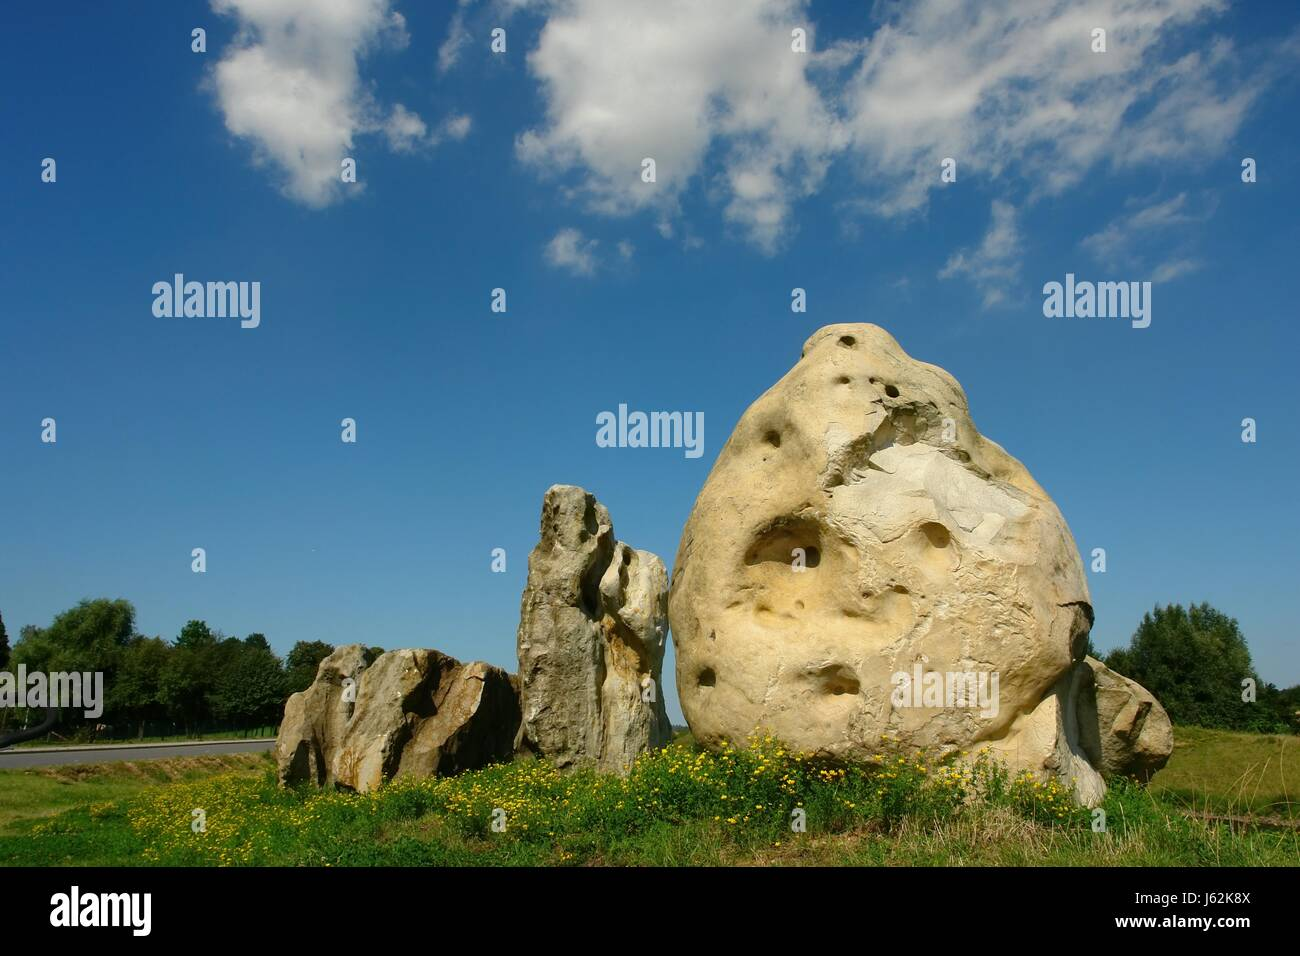 the rock in the lowlands Stock Photo  141429930 - Alamy 25ef28567b